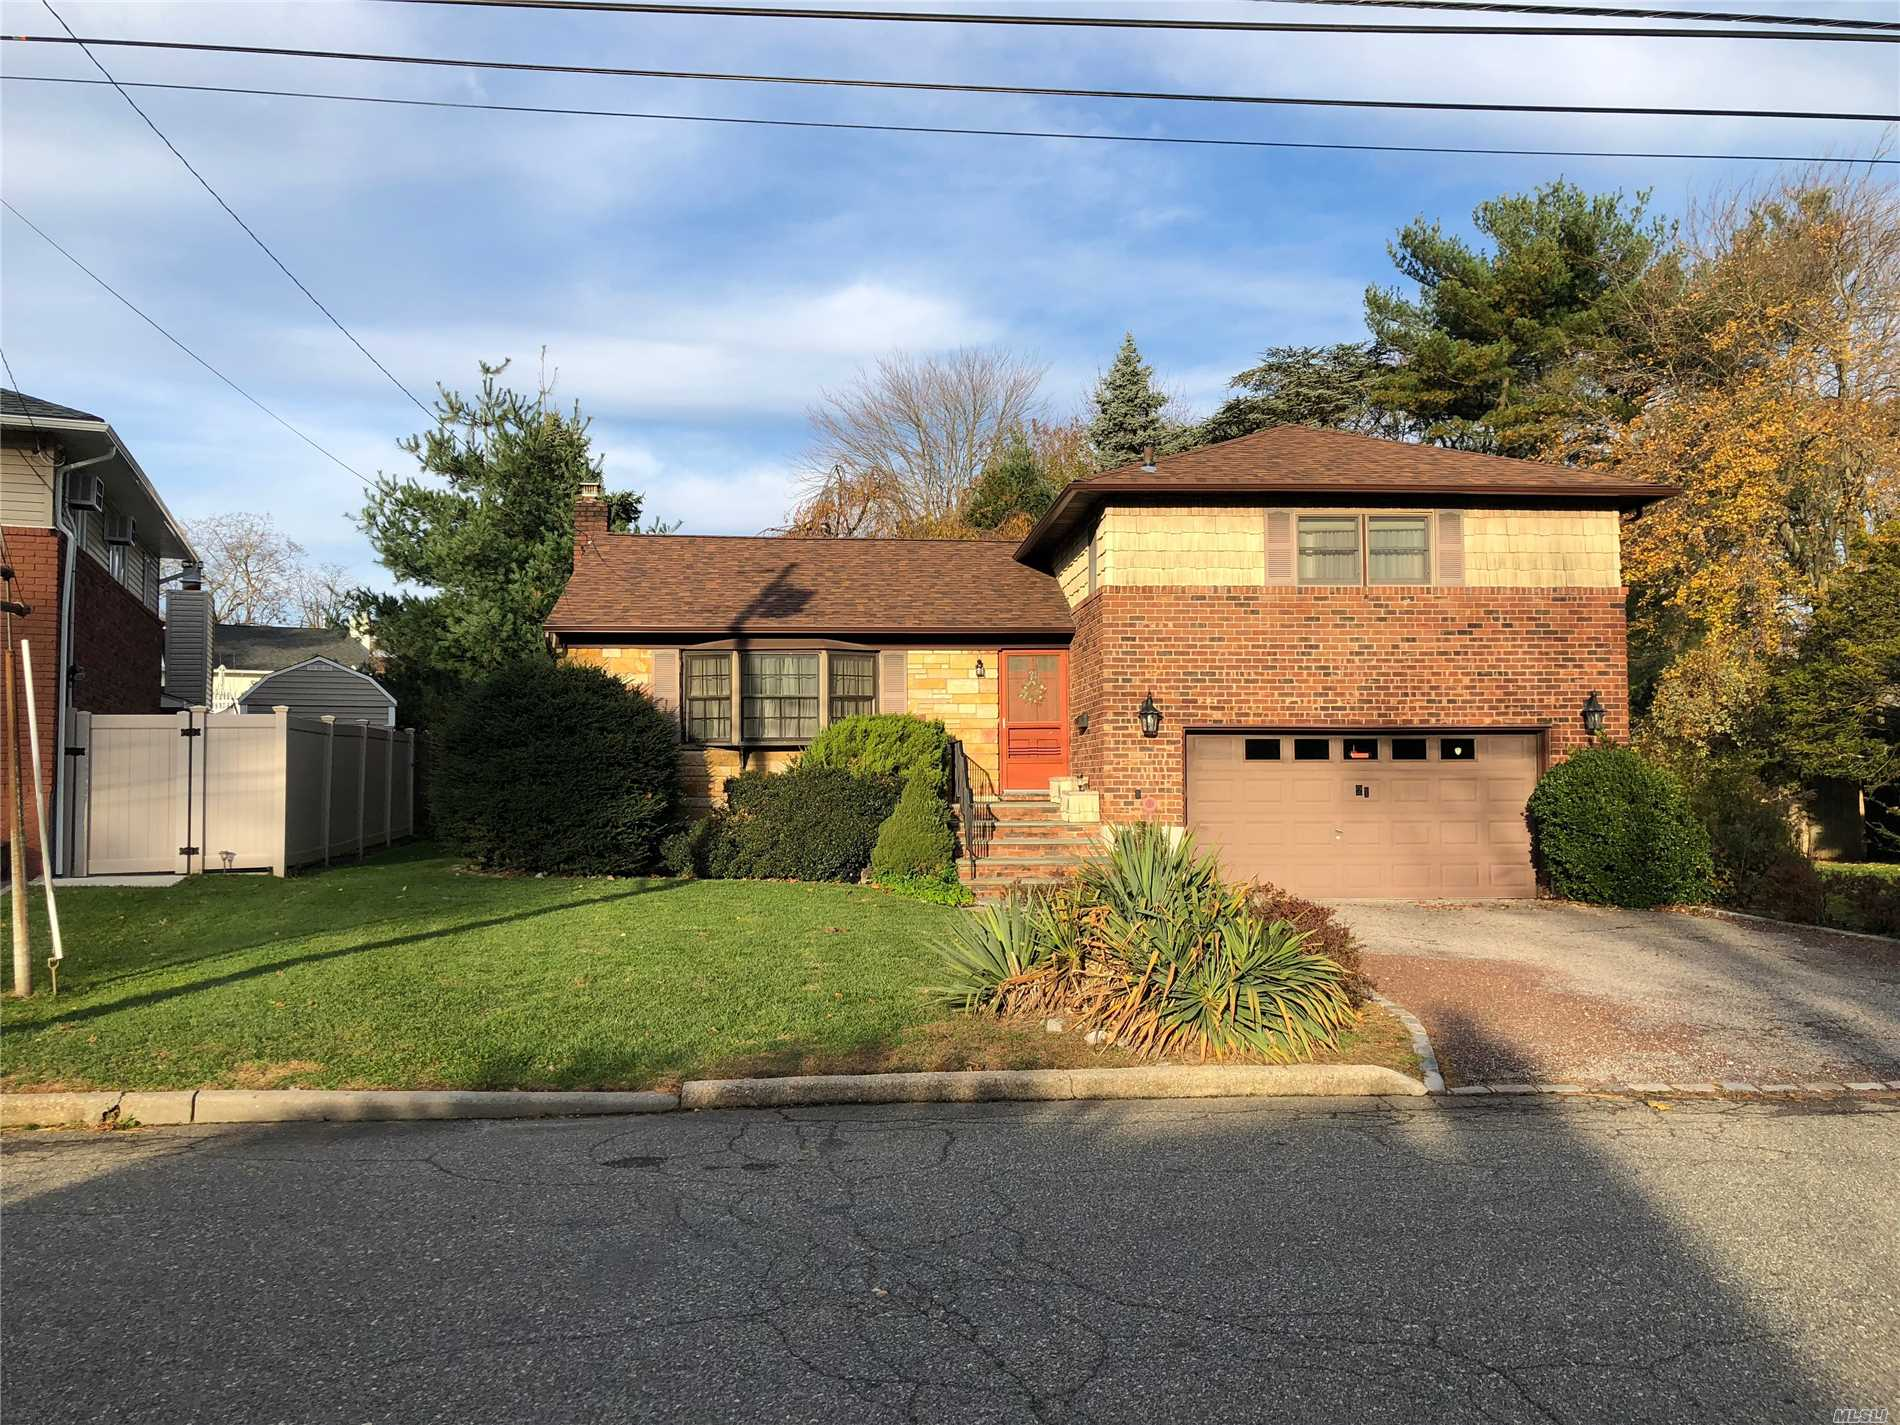 Great Home In Great Neighborhood. All Redone. Must See To Believe. Call Today! Won't Last!